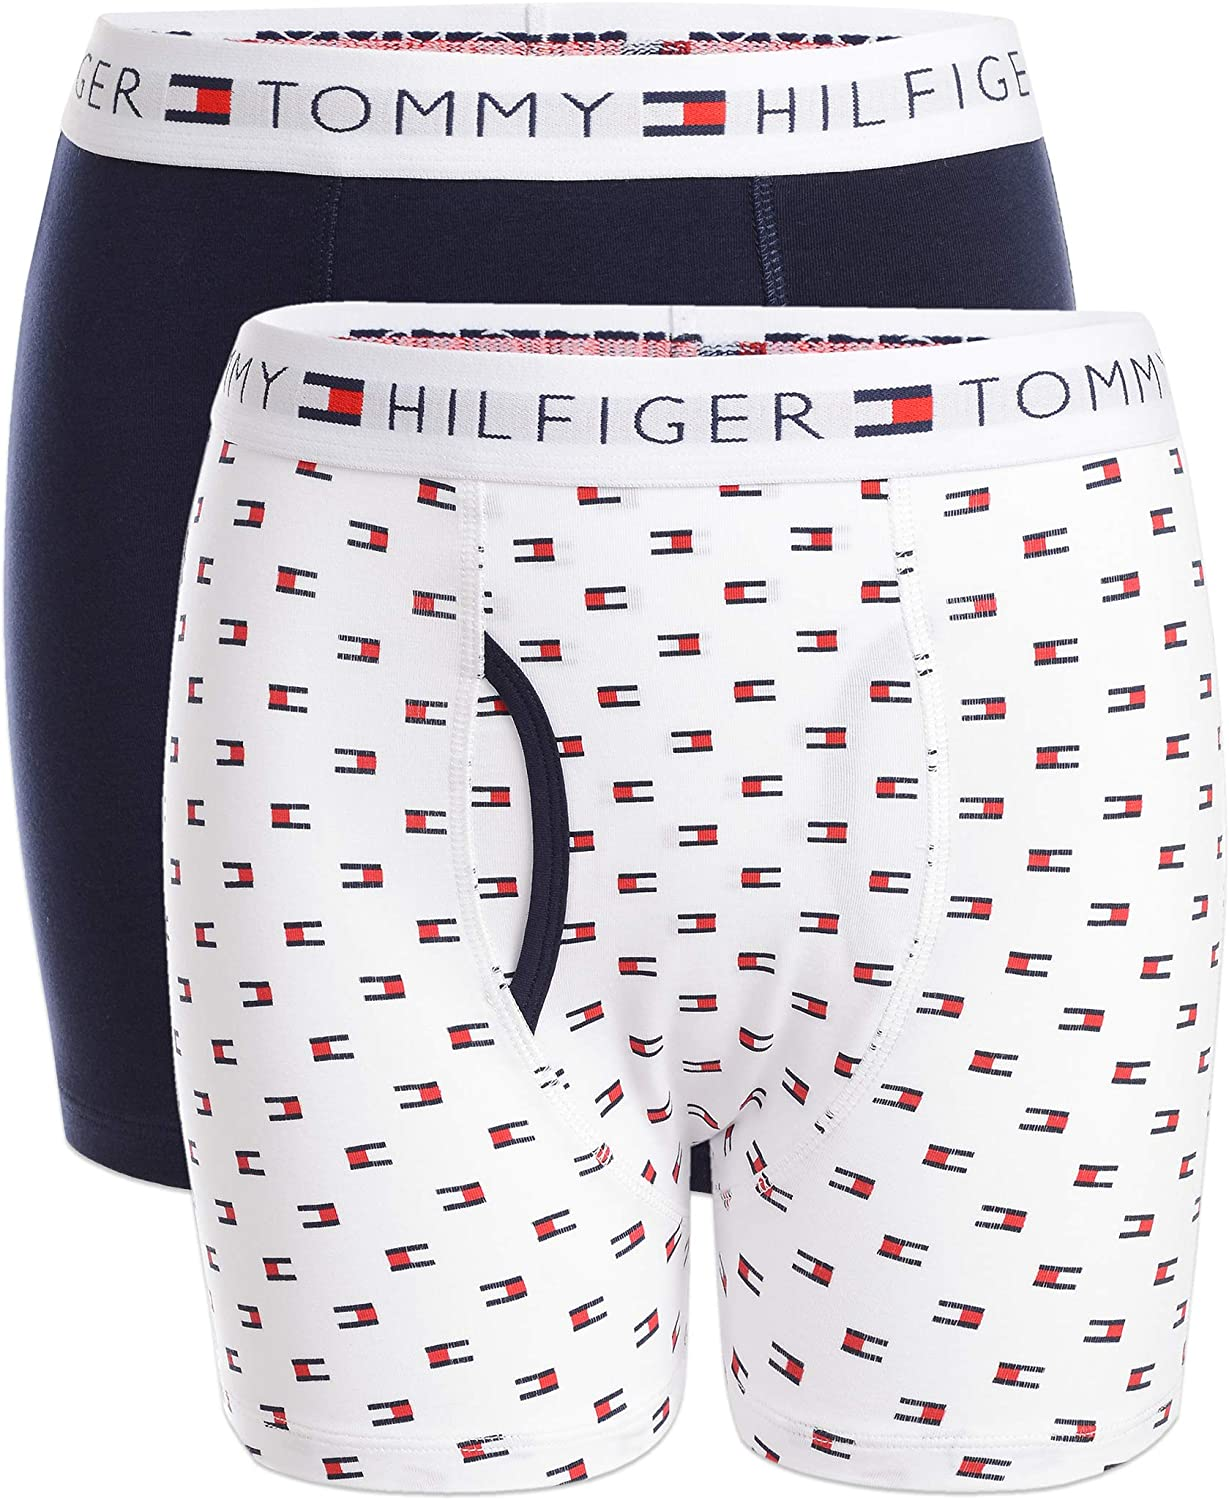 Pack of 2 Tommy Hilfiger Boys Boxer Shorts